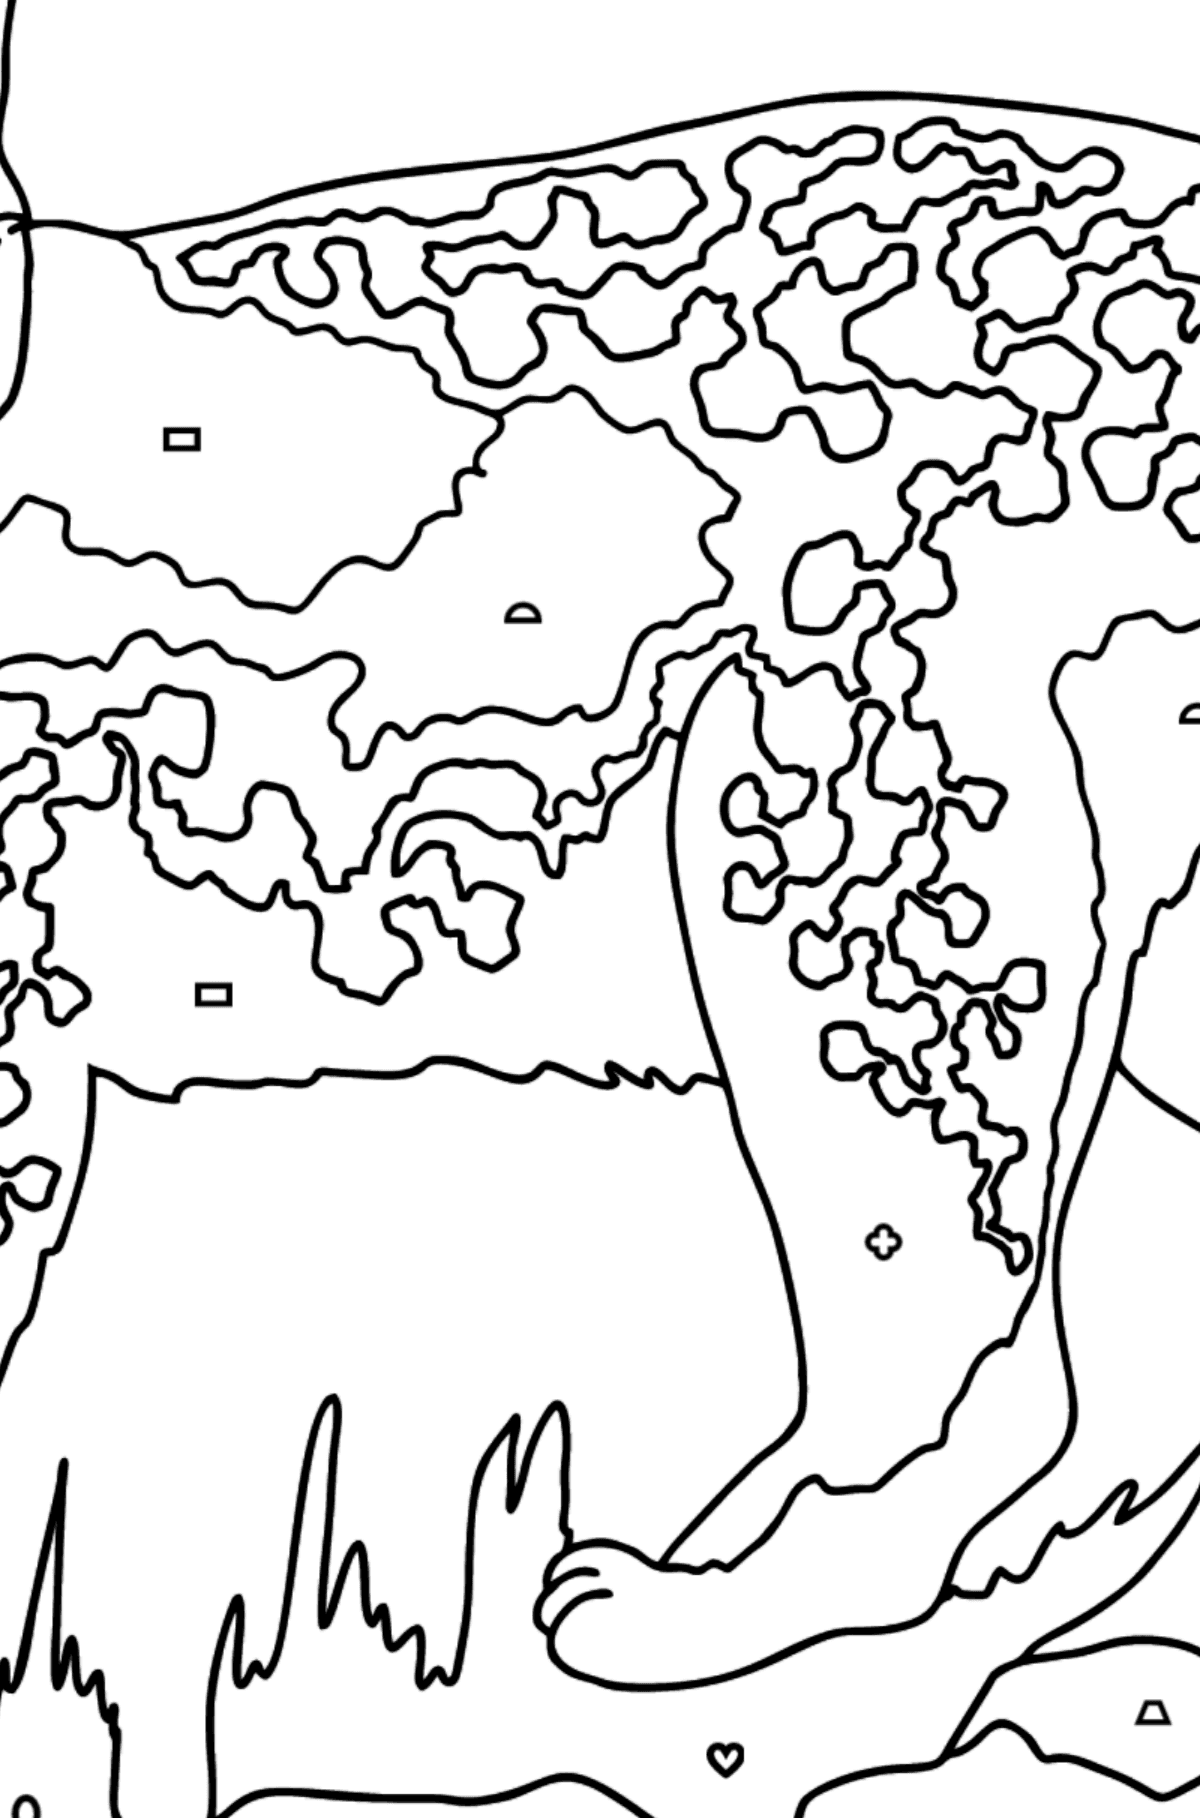 Coloring Page - A Wild Lynx - Coloring by Geometric Shapes for Kids